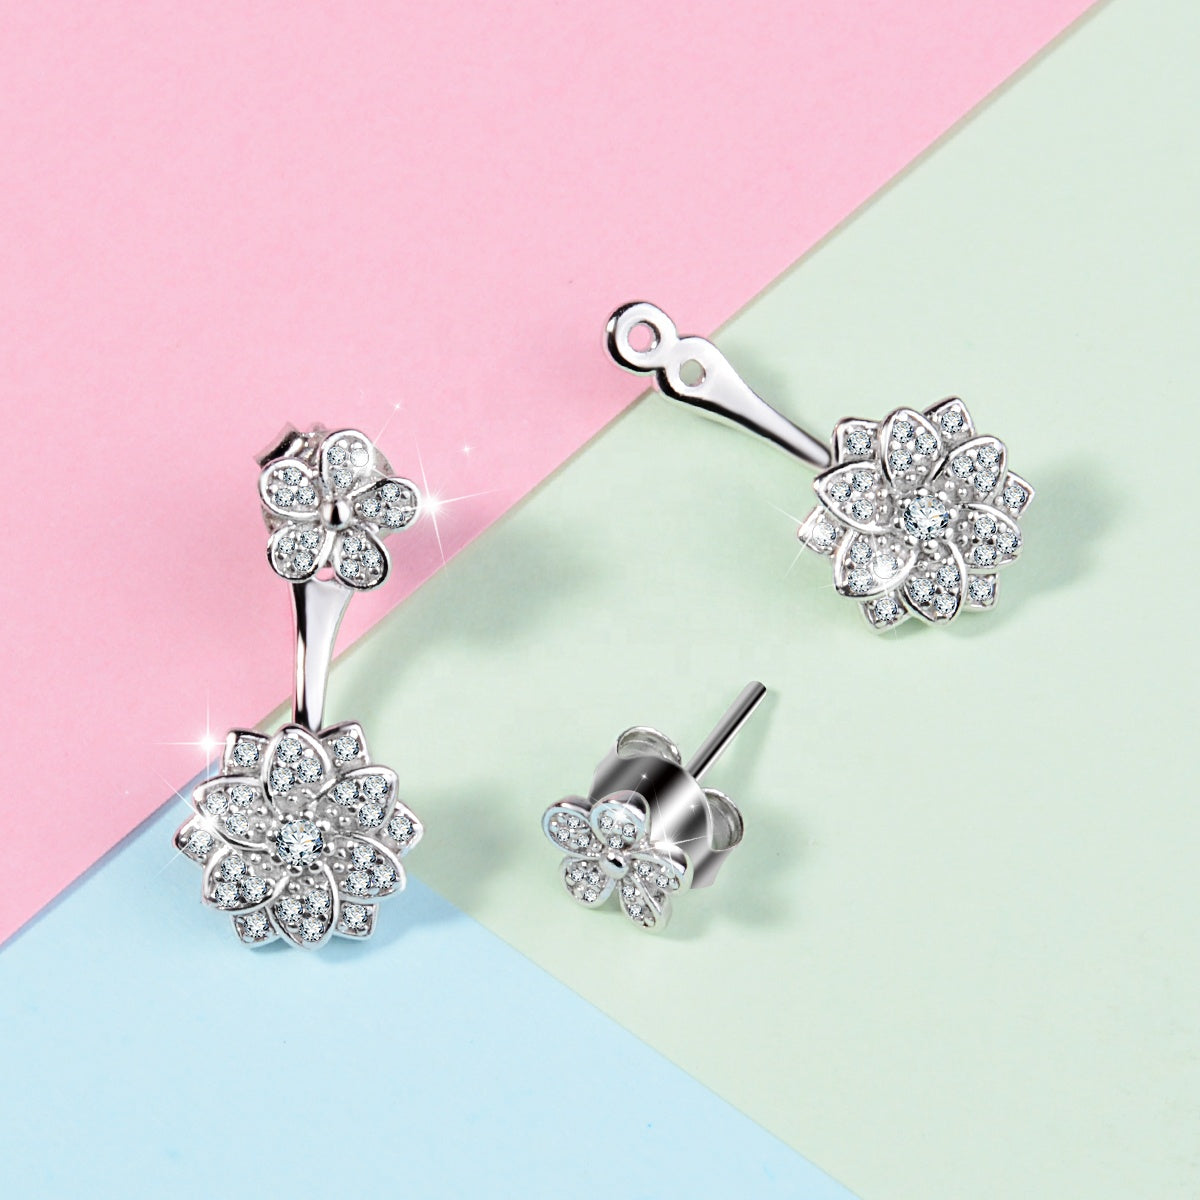 Elegant drop earrings; delicate back hanging design; 925 sterling silver with crystal; two way style earrings